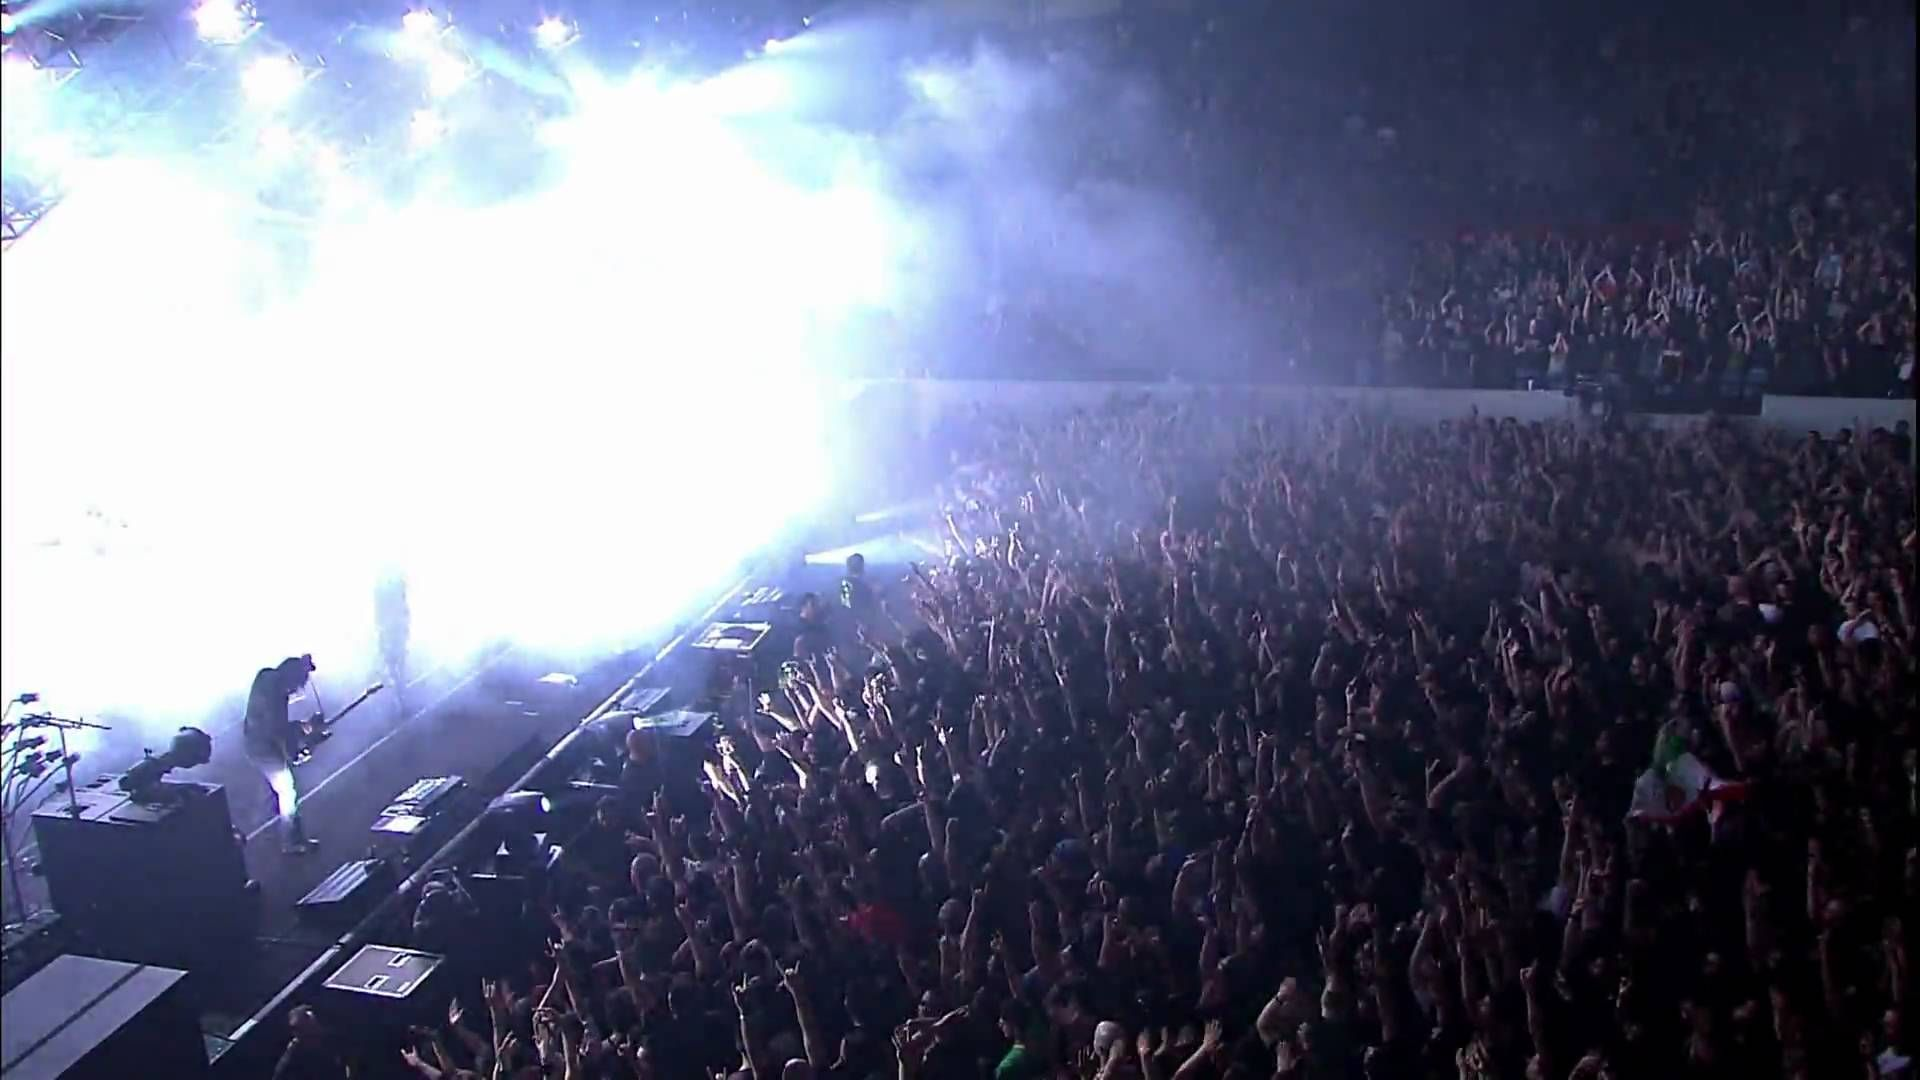 Nine Inch Nails - Head Like A Hole 1080p HD (from BYIT) (+playlist ...